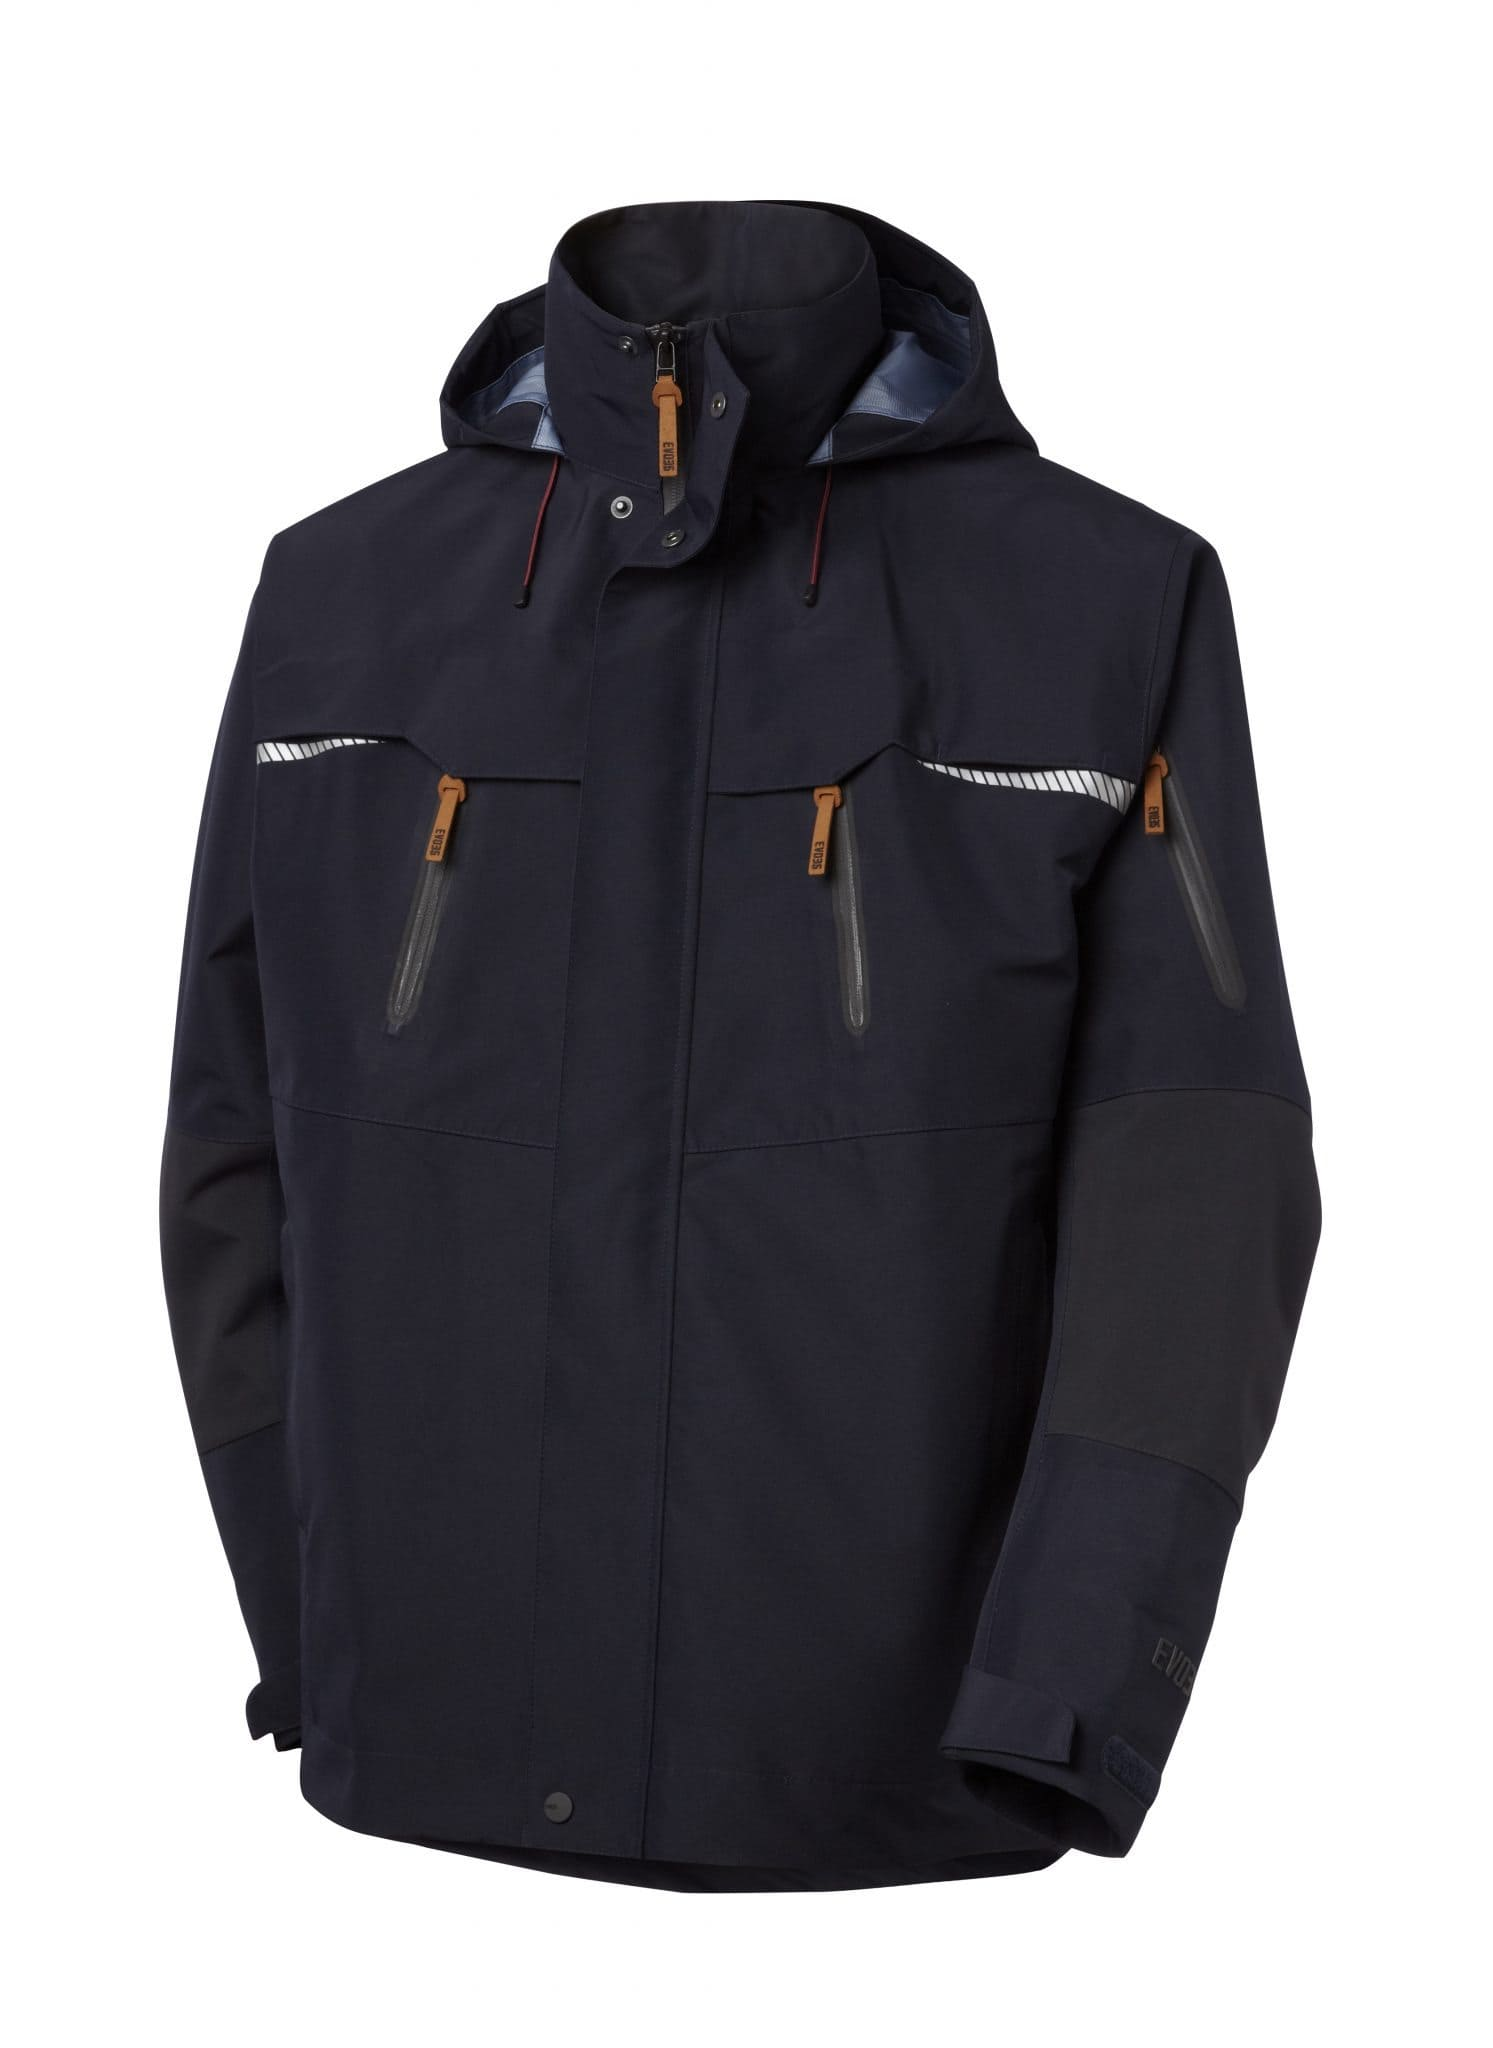 Goretex® jacket EVO35